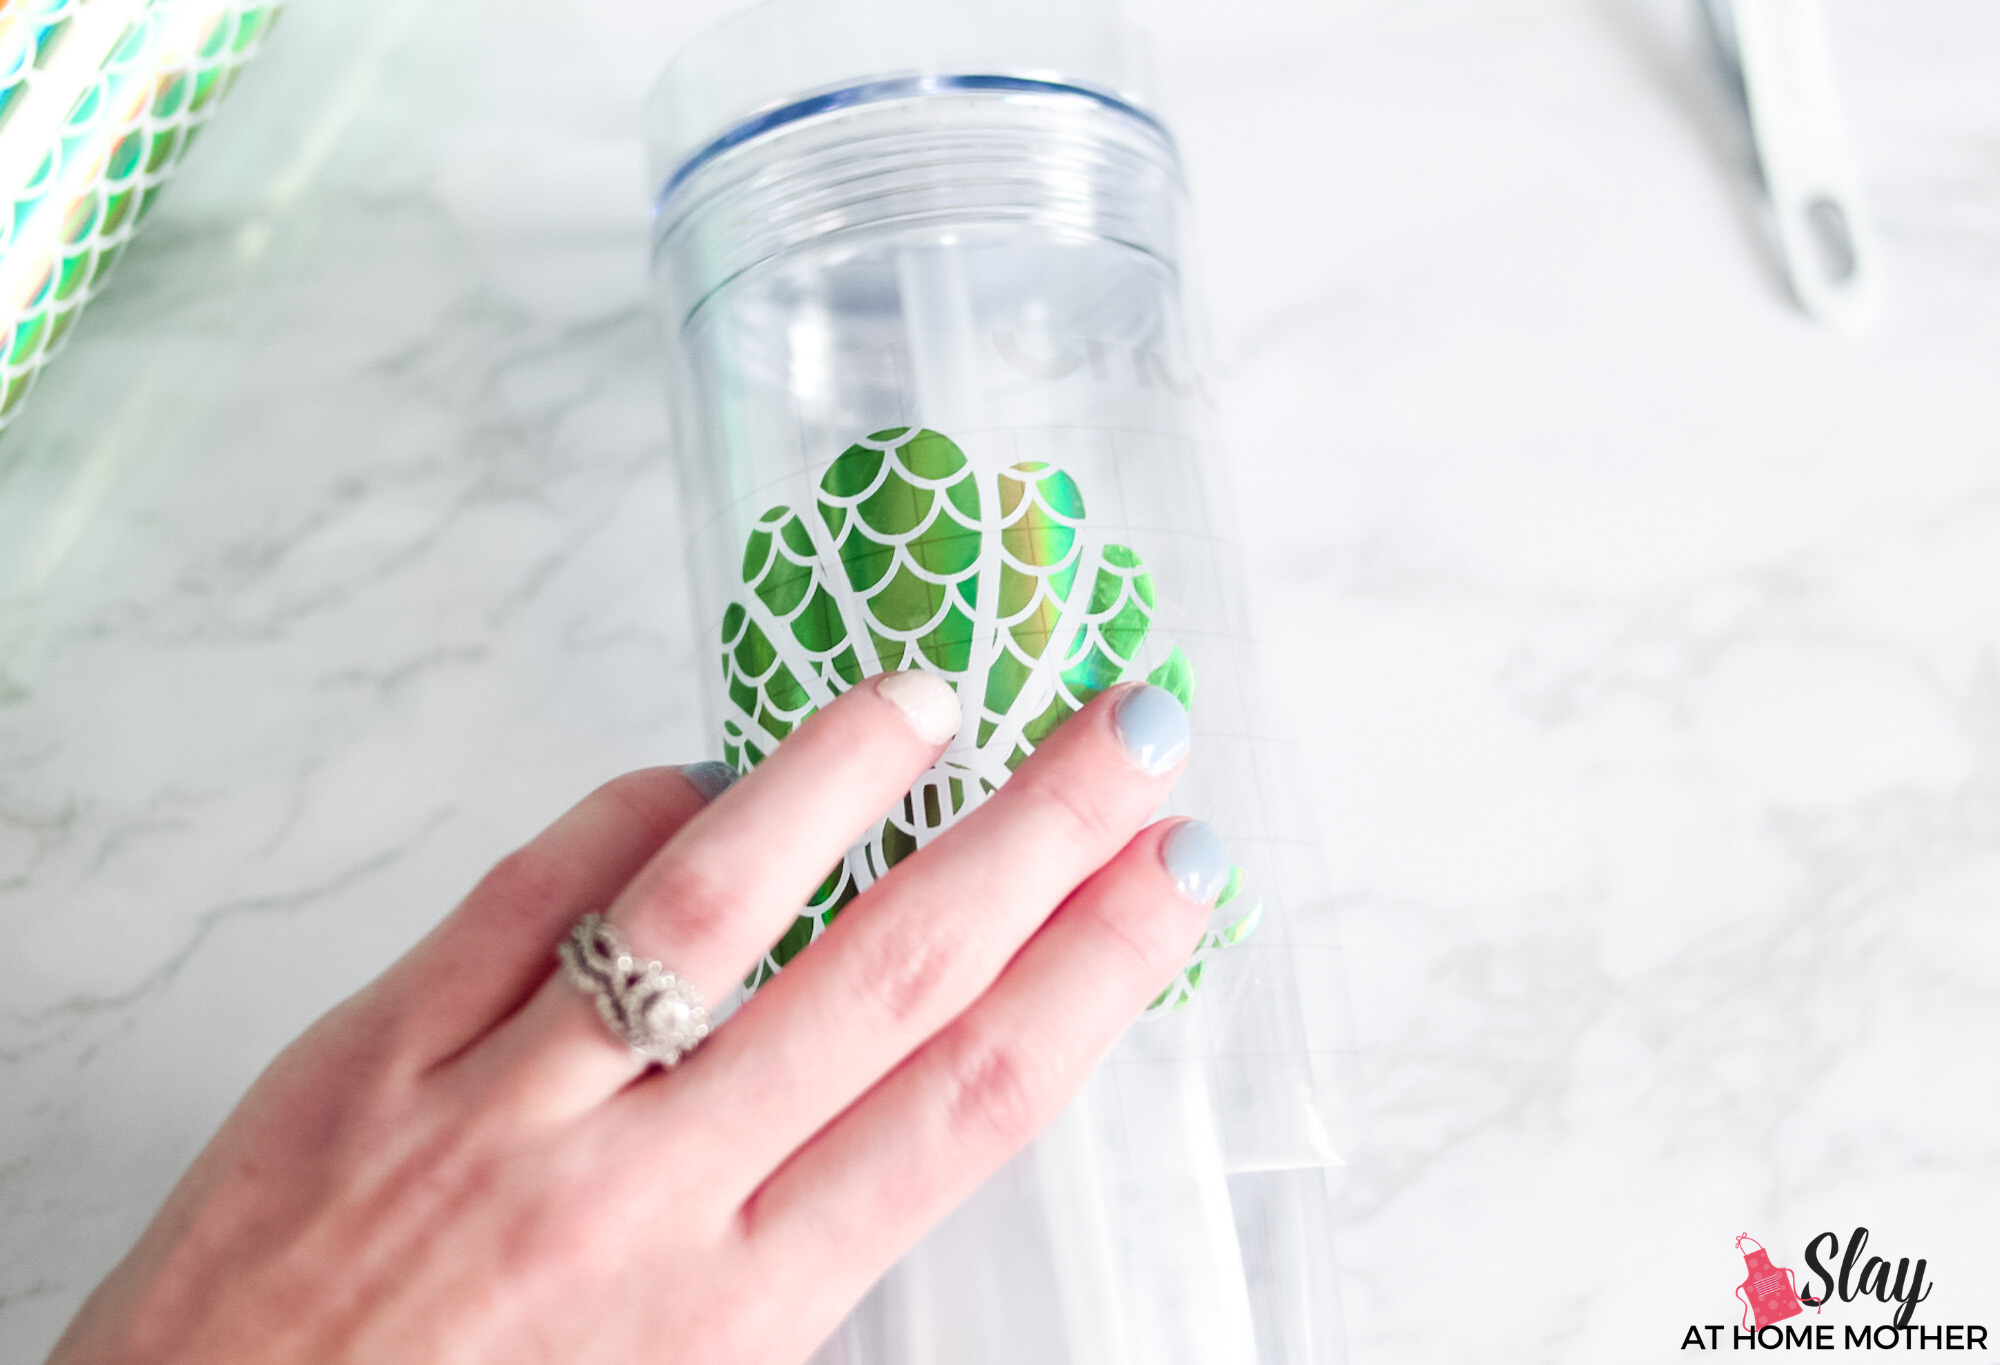 transferring vinyl decal to clear tumbler 2